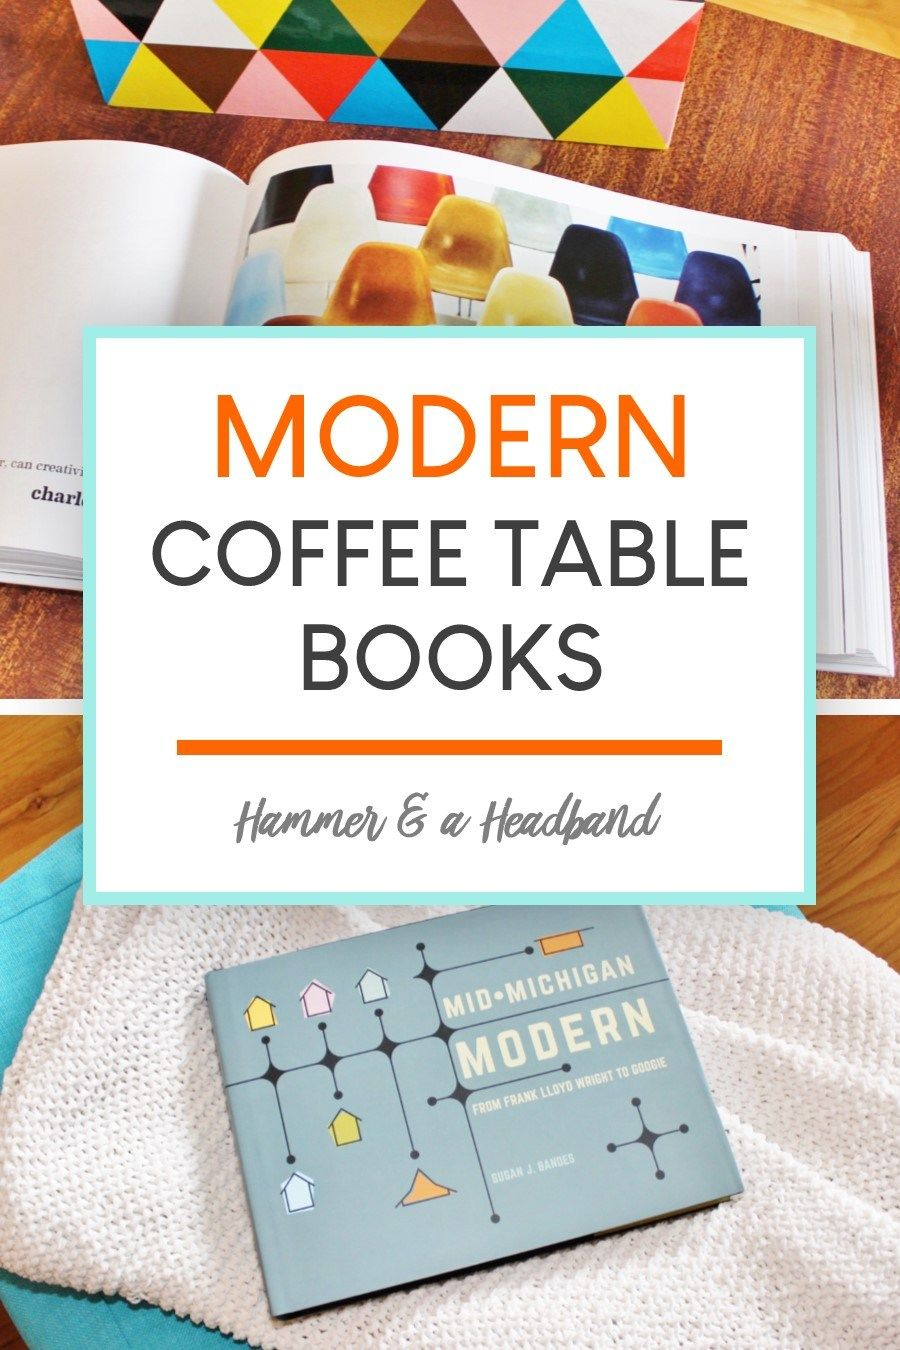 Displaying gorgeous coffee table books is one of the quickest ways to give your living room a design boost. Even better if you add books about design, like these favorites featuring mid-century icons, Palm Springs style inspo and more retro fun. Here are 24 great coffee table books, plus tips to help you style your modern coffee table. #homedecor #midcenturymodern #coffeetablebooks